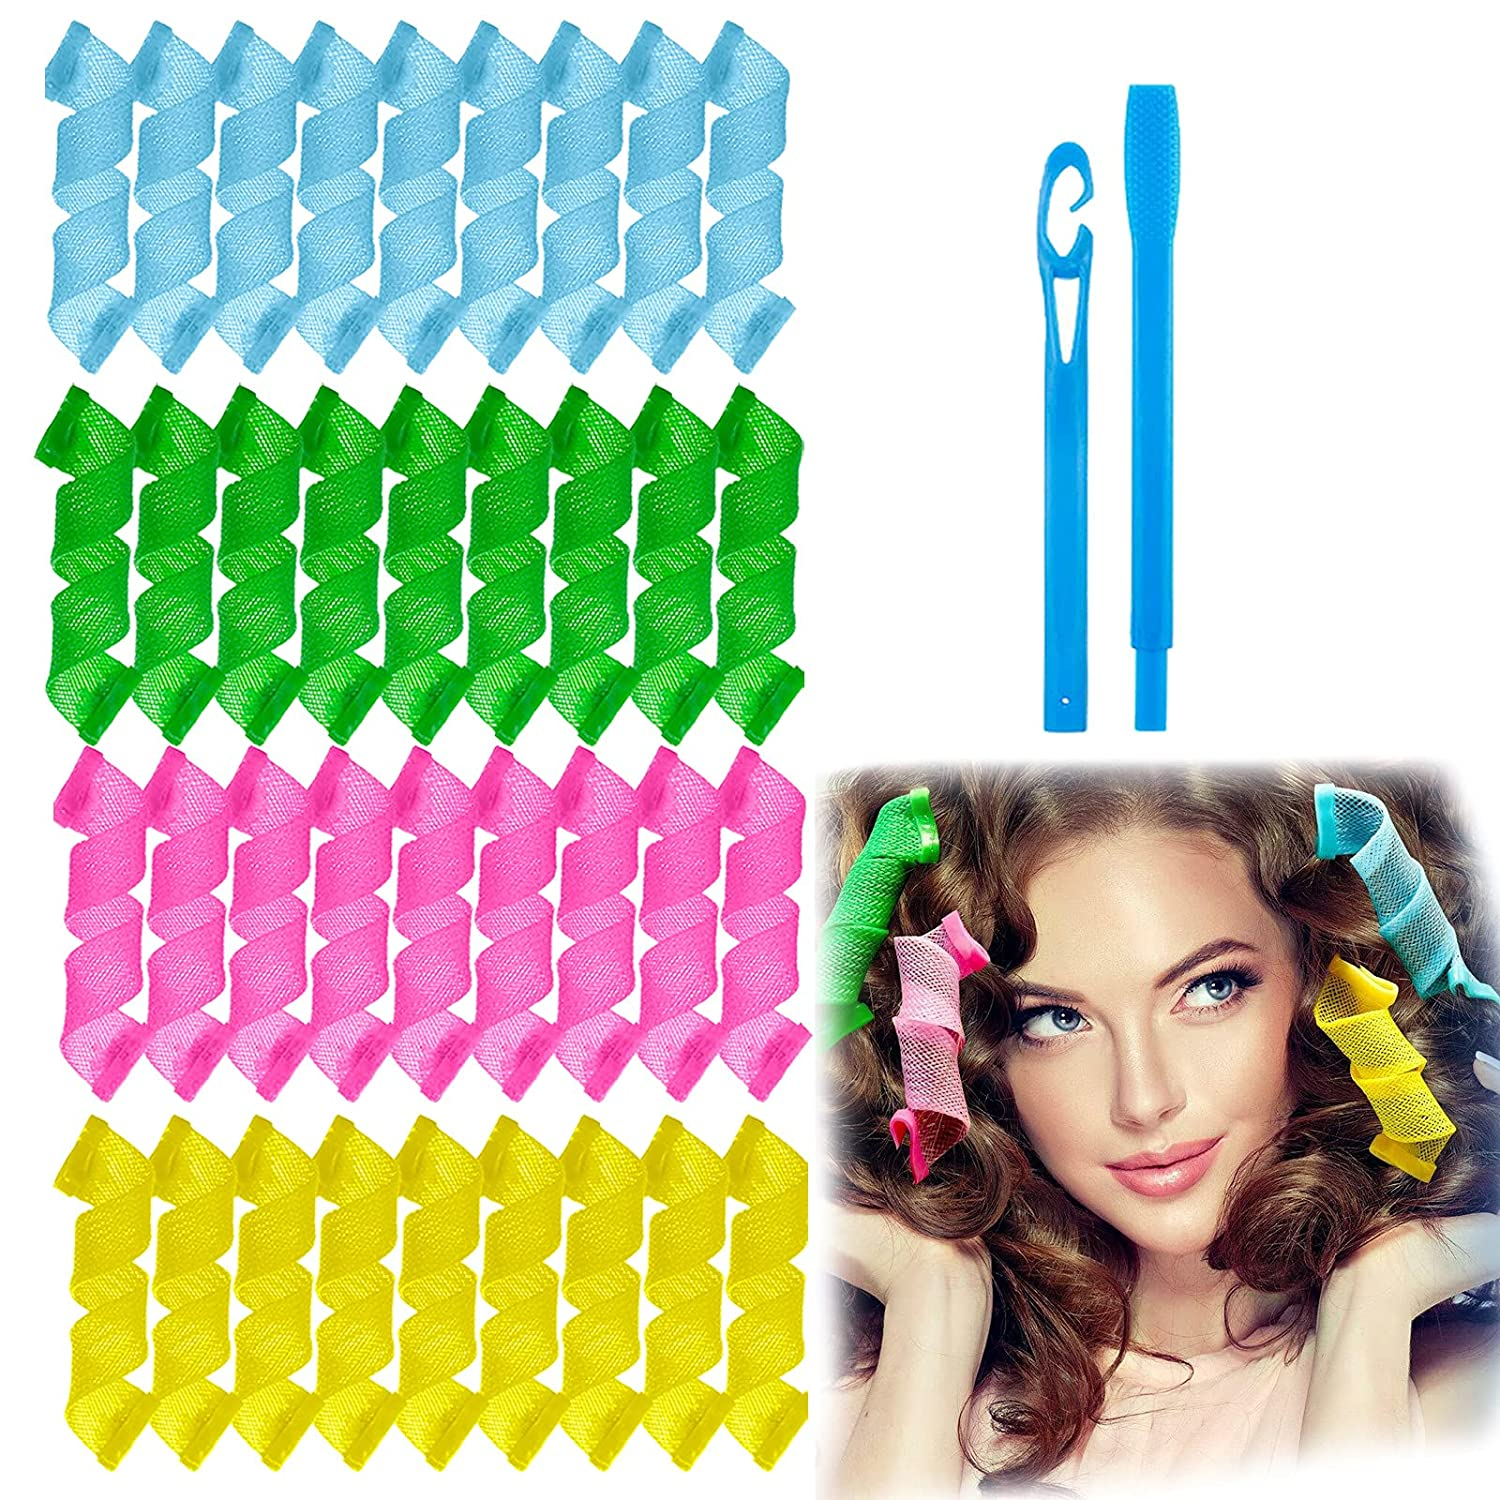 FOIIOE San Antonio Mall 36 Pieces Mother's Holiday Curlers Curls Austin Mall Gift Hair Spiral